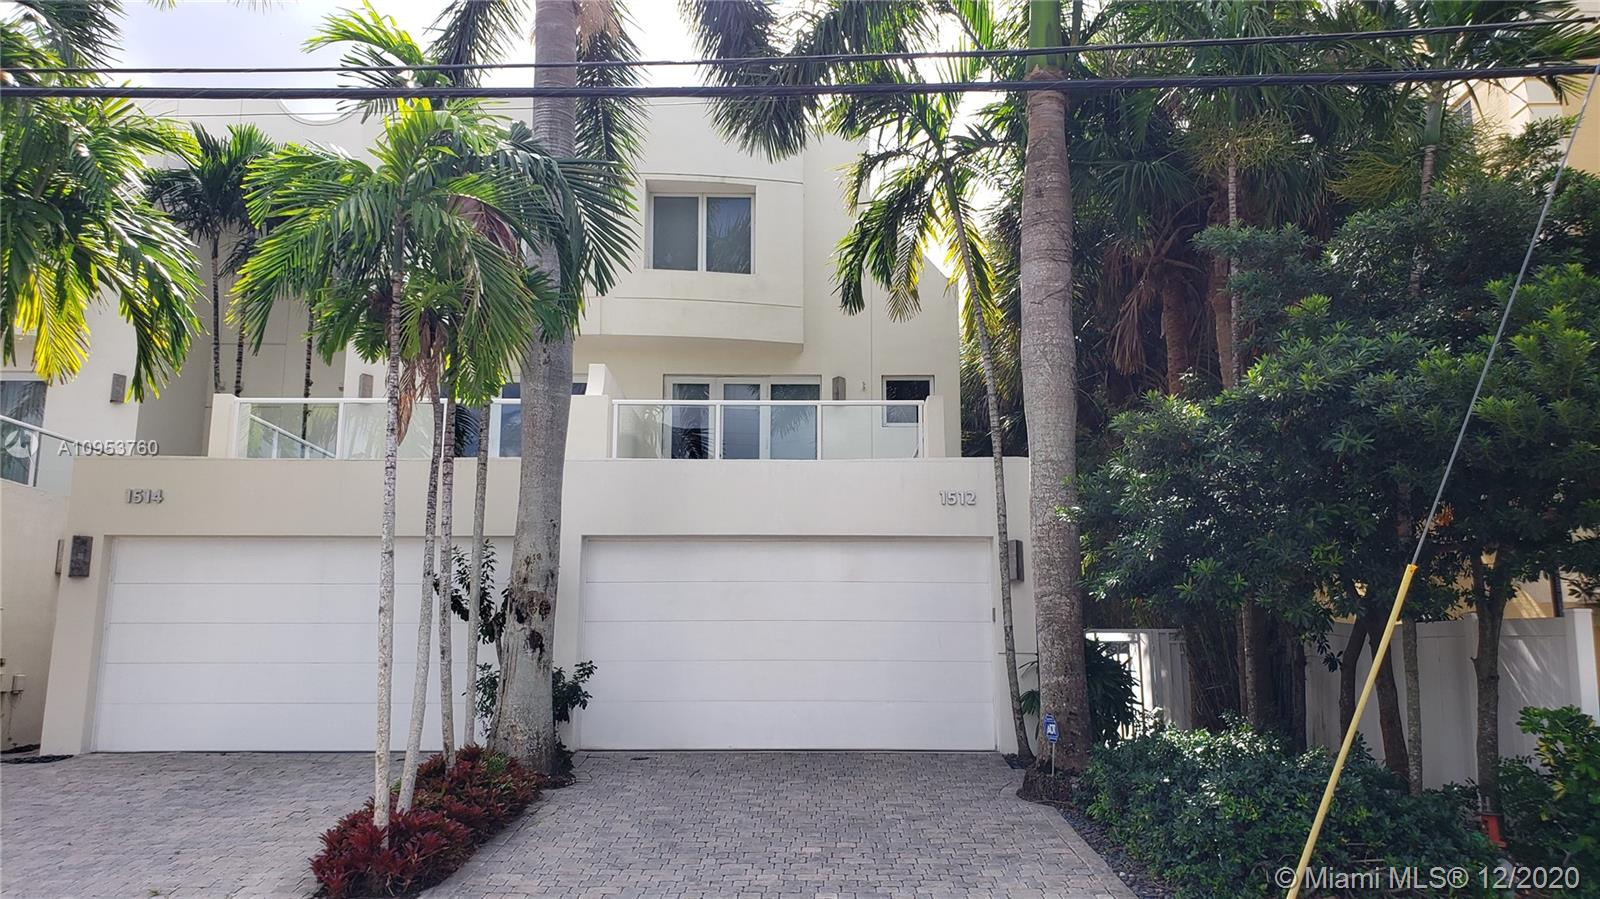 **AMAZING TOWNHOUSE** This is a corner unit, with a pool and 2 dock slips, for boats up to 37ft. high ceilings, high impact windows, private courtyard entry, double car garage and NO HOA FEES. Close to all the 17st causeway shops and minuets from Fort lauderdale inlet and sandbar. This 3 story home is built with an ELEVATOR, granite kitchen counters, wood kitchen cabinets, double entry doors in master bedroom with balcony,third floor can be a studio or entertainment center. Views are a must see.